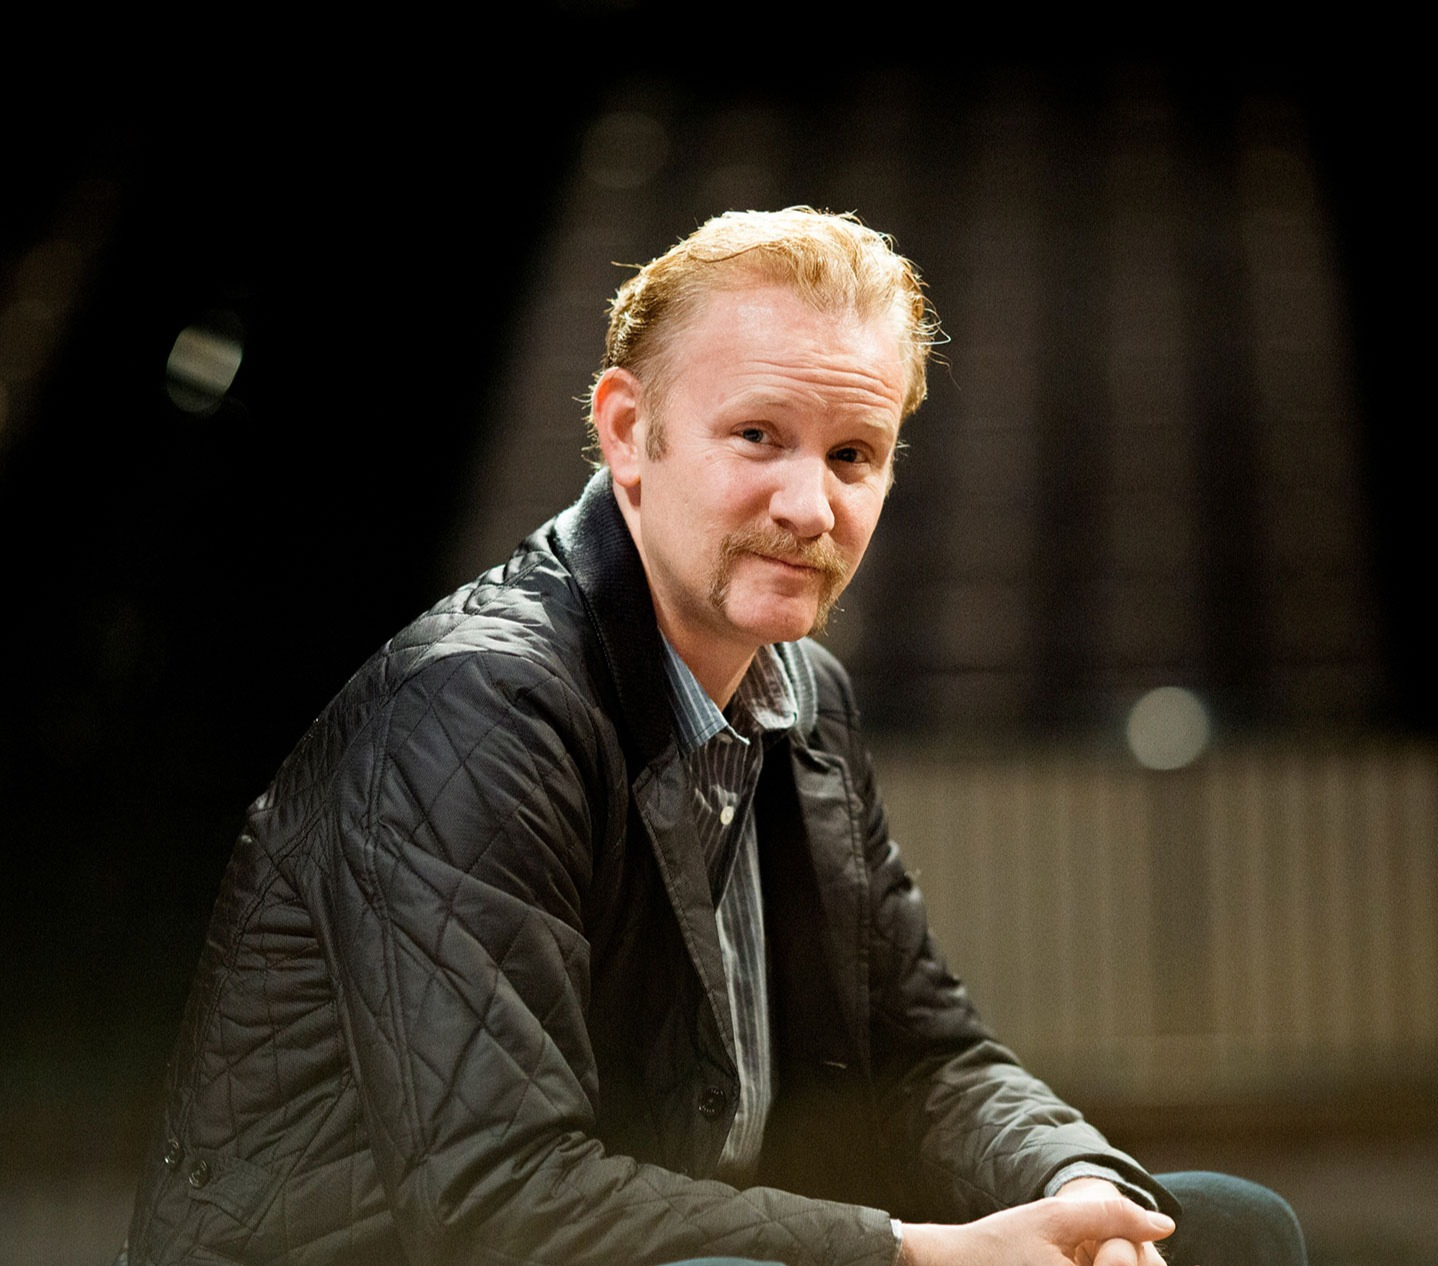 Morgan Spurlock looks dashing in his black jacket and lined shirt. He is sitting and giving intense looks facing the camera